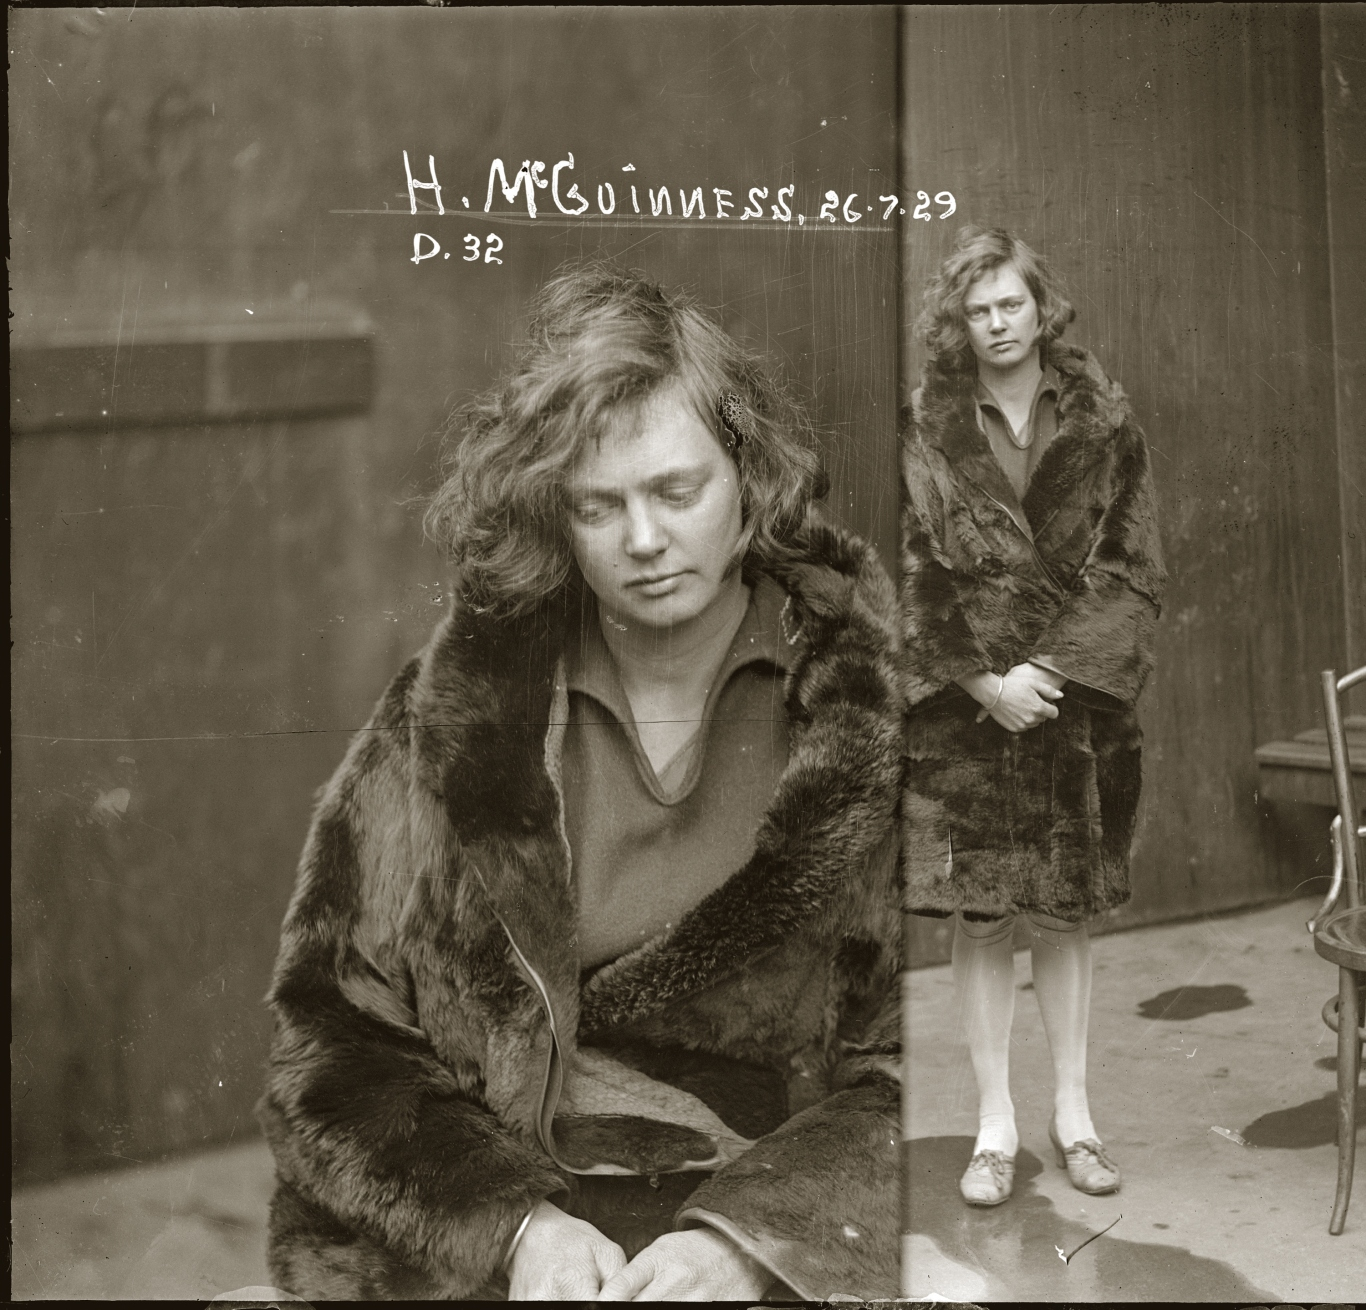 Two views of young woman dressed in fur coat. On the left she is closer to the camera and looking down, on the right she can be seen full length, showing pale stockings and shoes. The image is hand-inscribed 'H. McGuiness 26.7.29 D32'